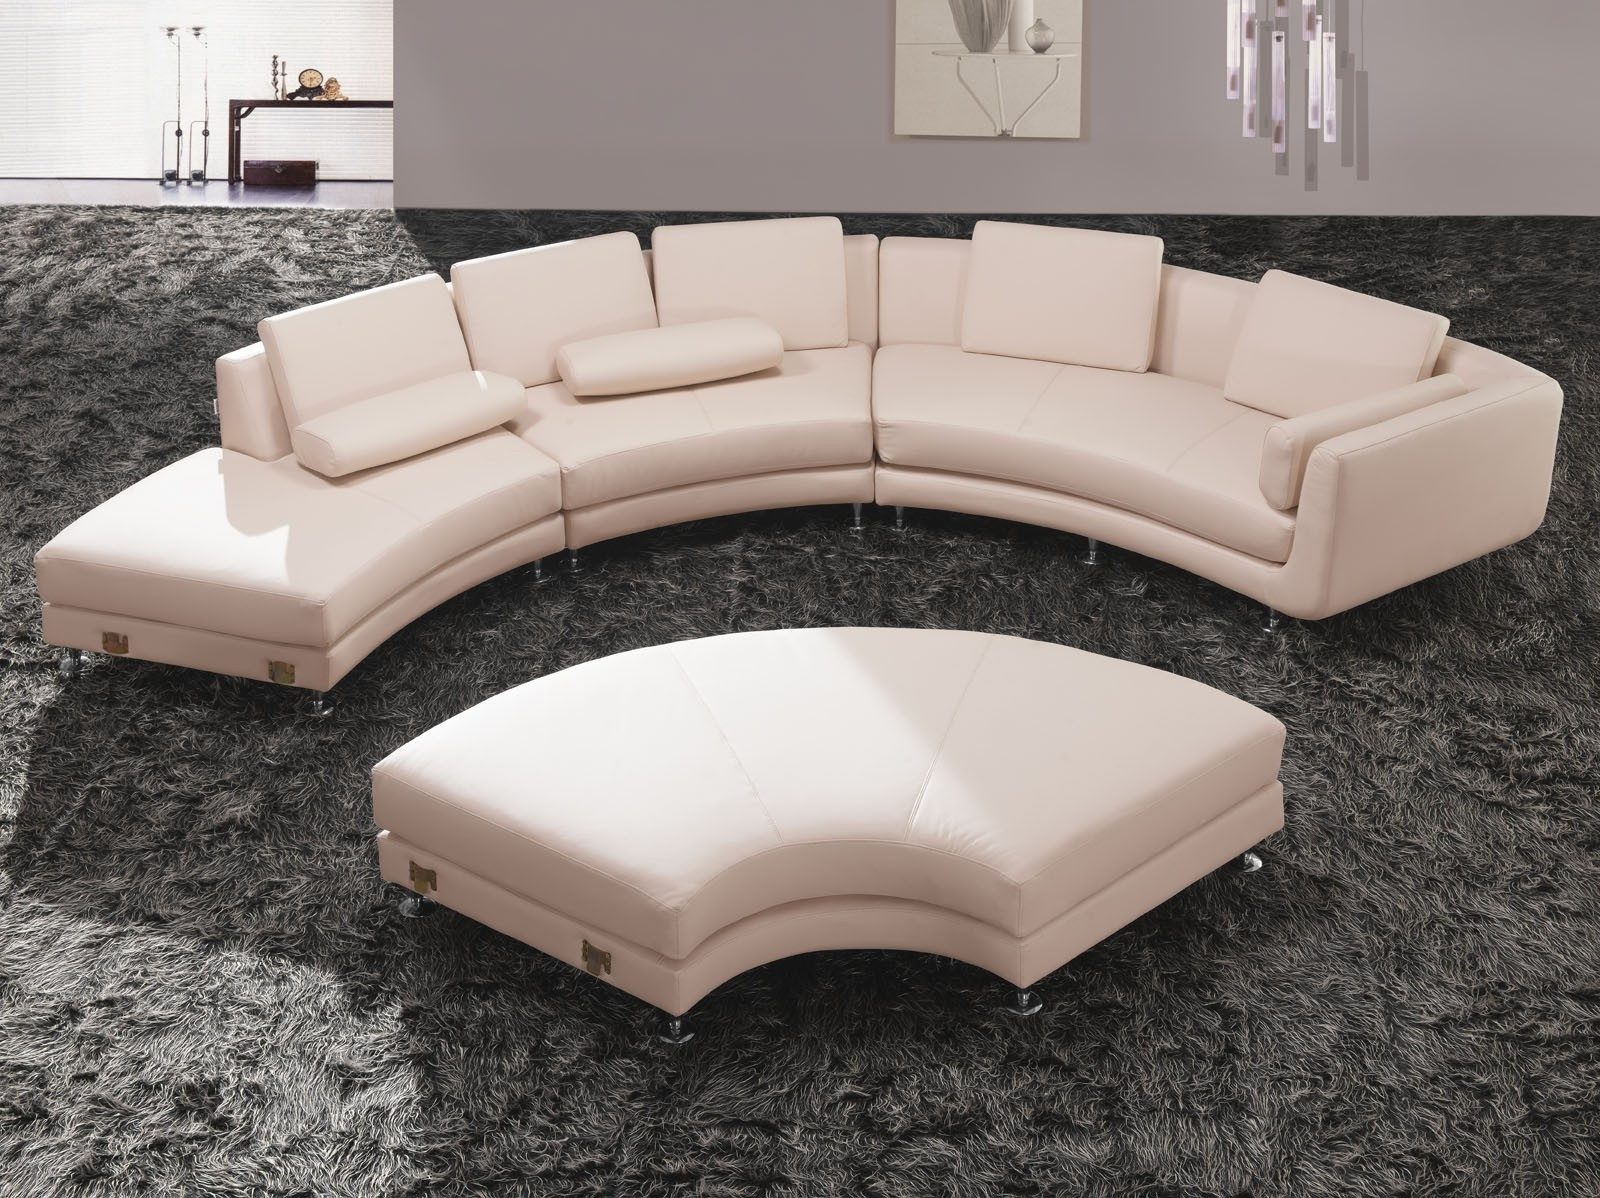 Well Liked Curved Sectional Sofas With Recliner With Living Room: Microfiber Recliner Sofas – Tips For A Buyer (View 6 of 15)